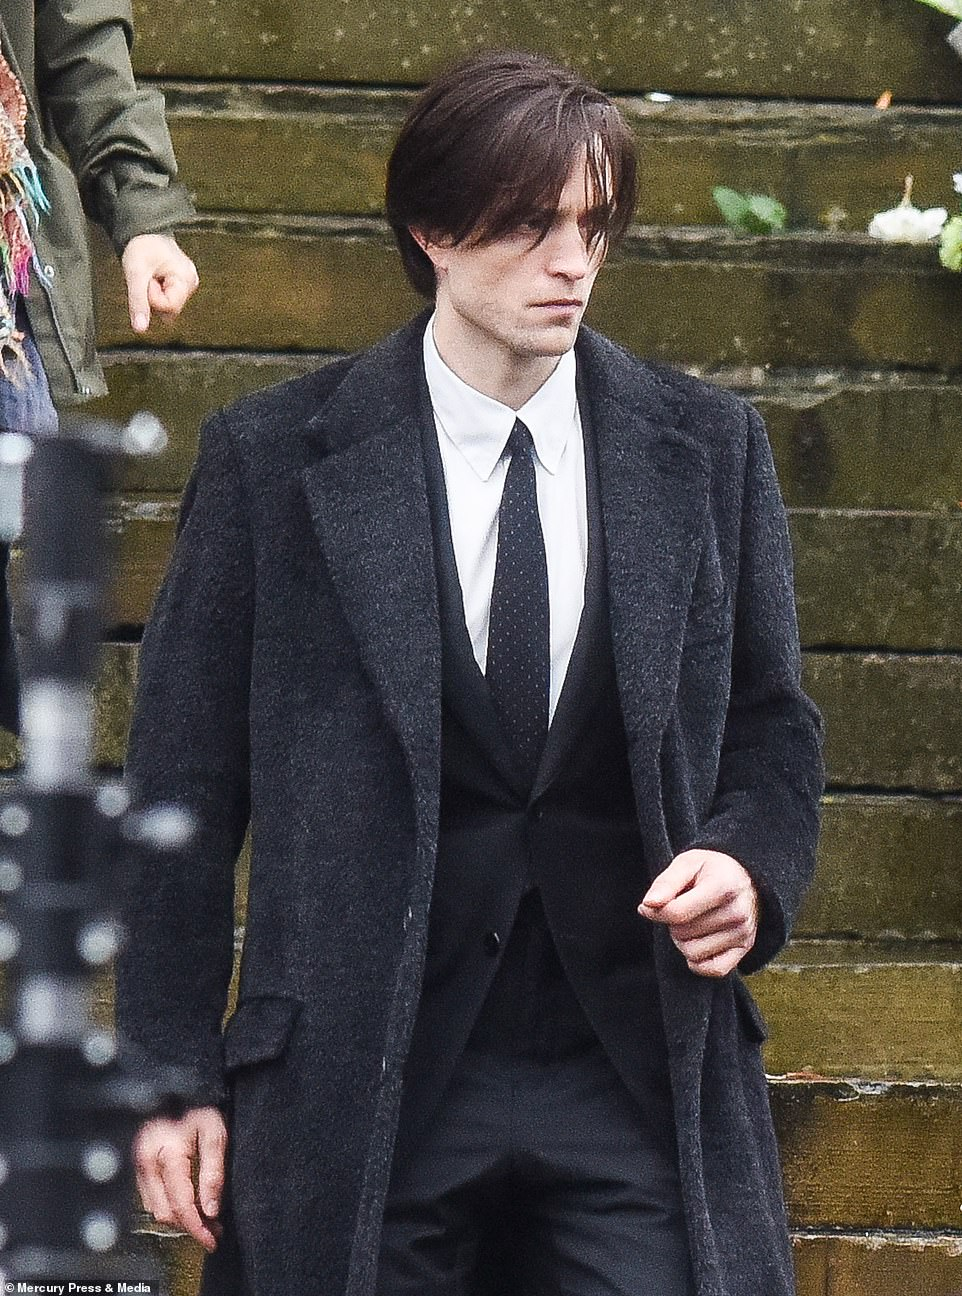 The Batman: Robert Pattinson is seen on set for FIRST time as he shoots funeral scene in Liverpool 4